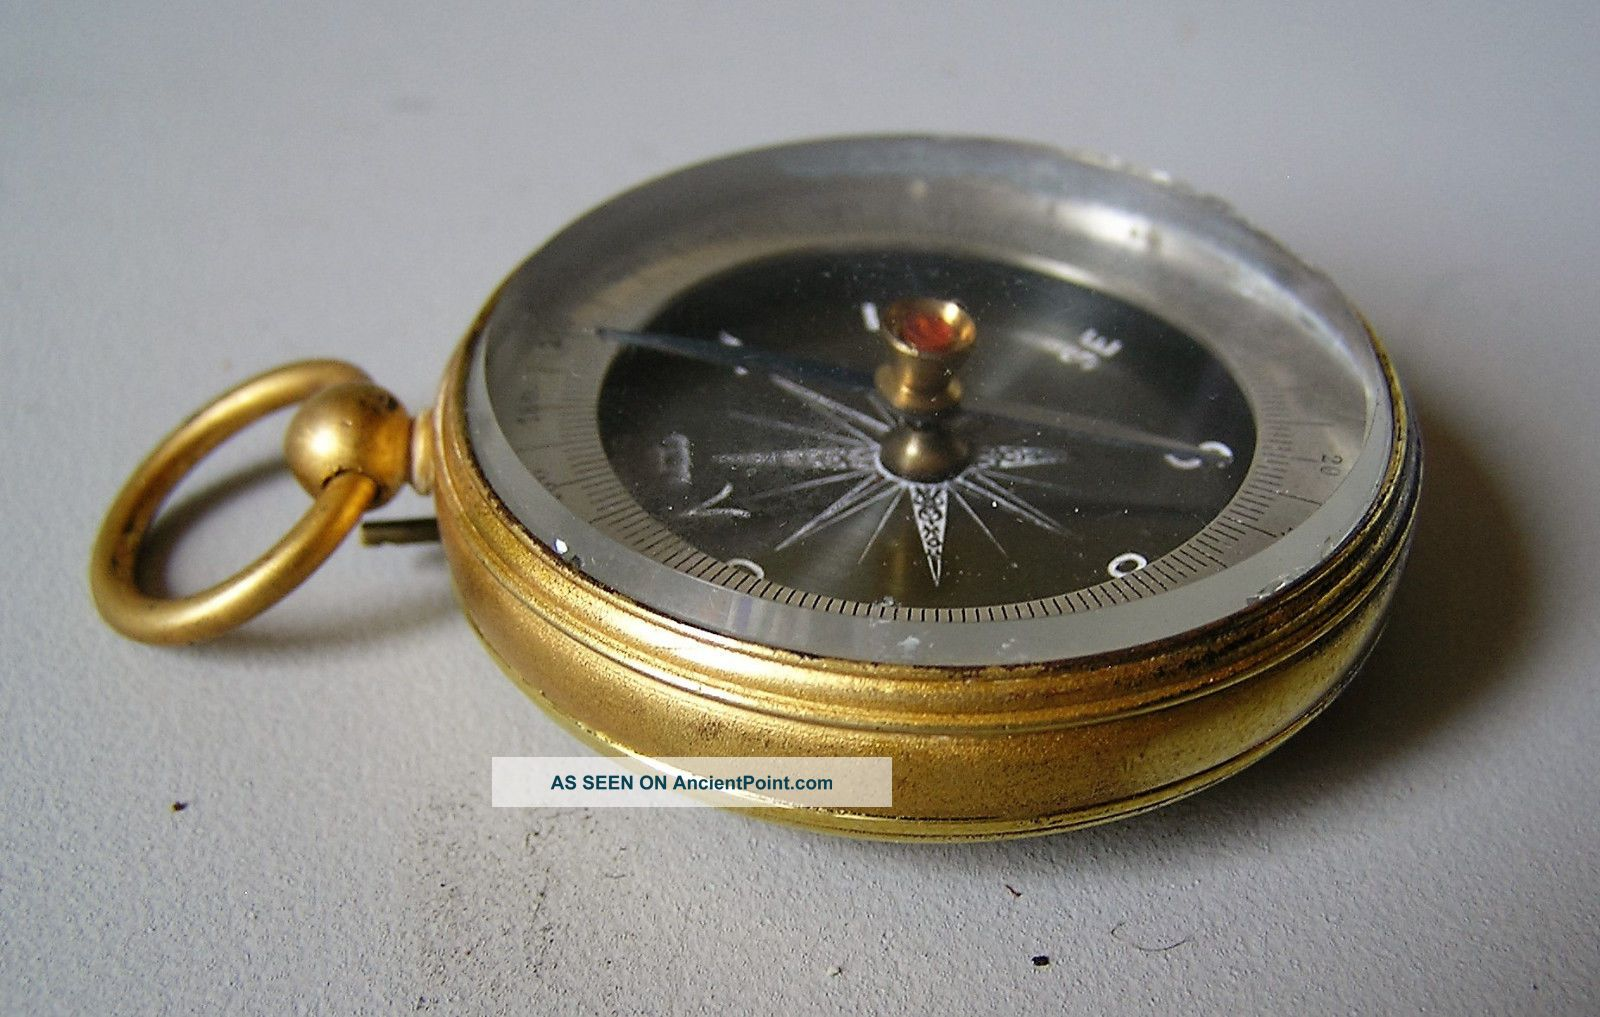 Fine Antique French Compass In Gilded Case 1900 Compasses photo